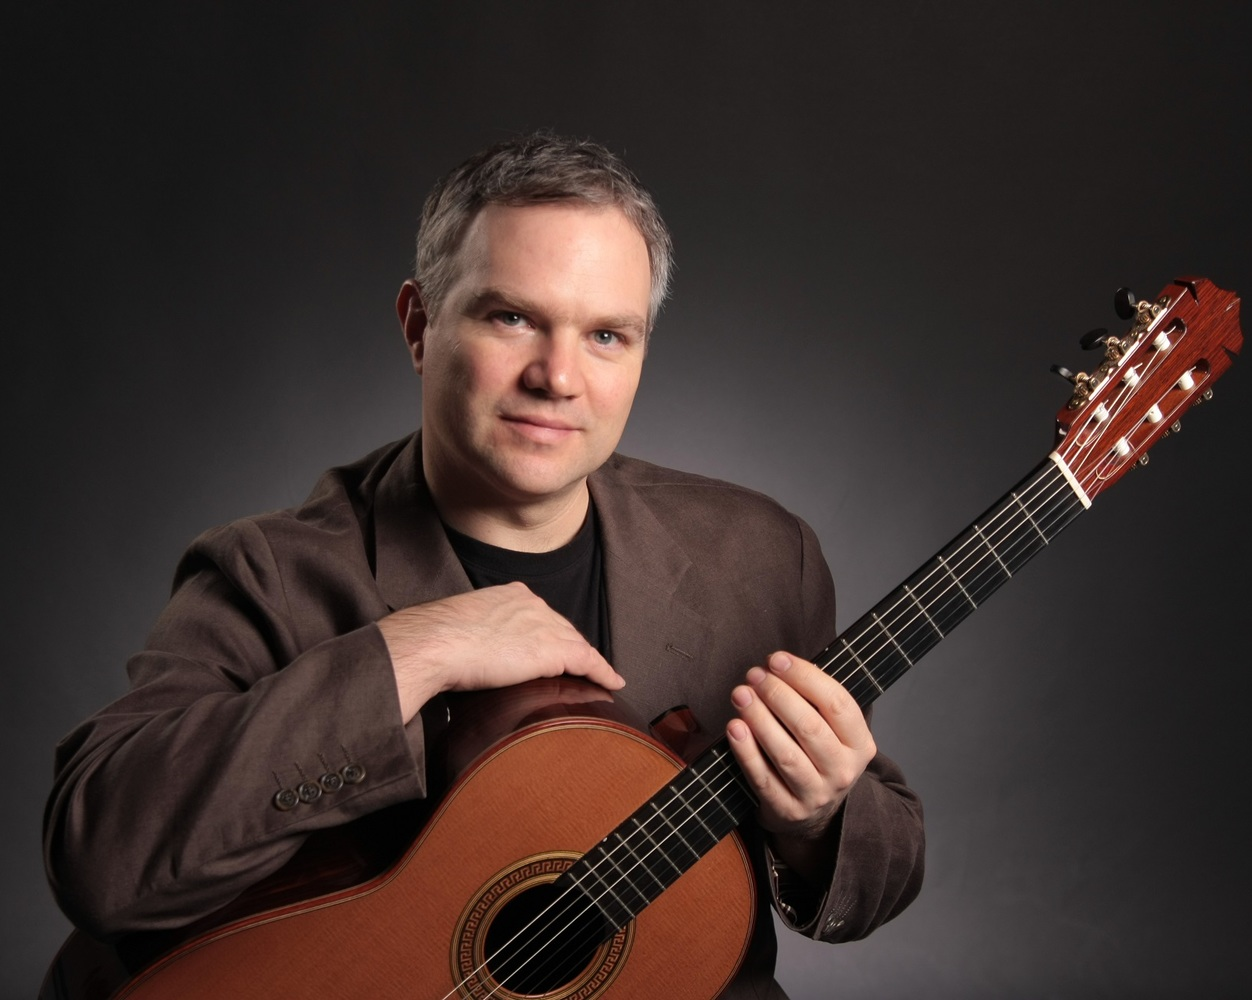 Michael LeFevre  http://michael-lefevre-guitar.com/  Michael began classical guitar studies in high school at the Willoughby School of Fine Arts in Northeast Ohio. He studied with Steve Novacek at the Cornish College of the Arts in Seattle, where he earned a degree in 1992. He has taken masterclasses from some of the world's greatest soloists, including Pepe Romero, David Russell, Eduardo Fernandez, and Paul Odette. In 1193 he took first prize at both the Northwest Guitar Festival and Portland Guitar Festival competitions and began teaching private lessons at the Rosewood Guitar Shop in Seattle. In 1995 he took forst prize at the International Guitar Congress Competition in Corfu, Greece. In 2001 Michael was awarded the Northwest Young Artist Award Trou-Prize from the Seattle LMC, a competition open to all classical performers. In addition to solo performances in venues such as Seattle's Benaroya Hall, Michael has Performed with such ensembles as the Seattle Opera, the Seattle Guitar Trio, and the St. Helens String Quartet. He has taught at Cornish and Whitman Colleges and is currently on the faculty at Walla Walla University.